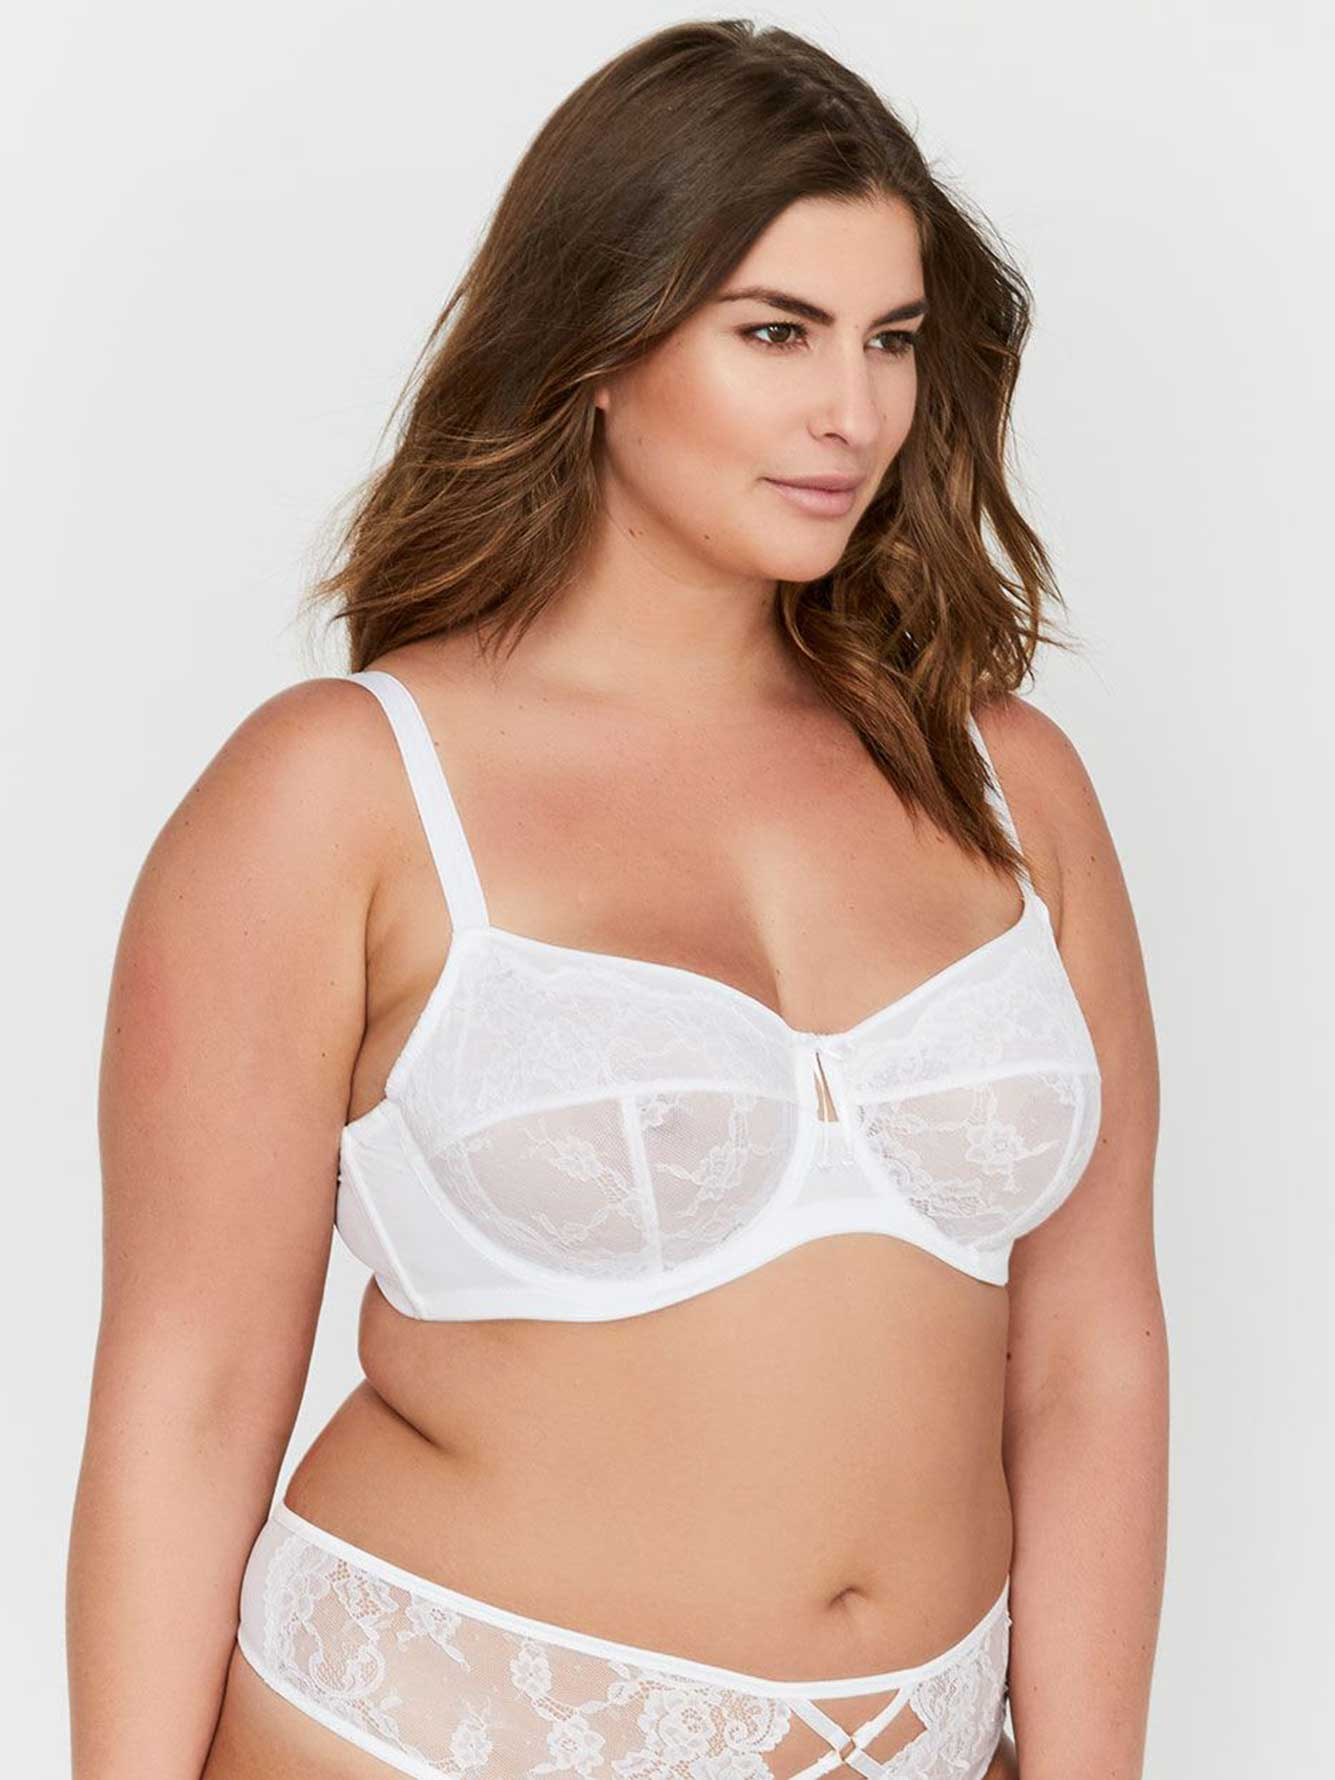 Soutien-gorge Attraction Fatale Ashley Graham